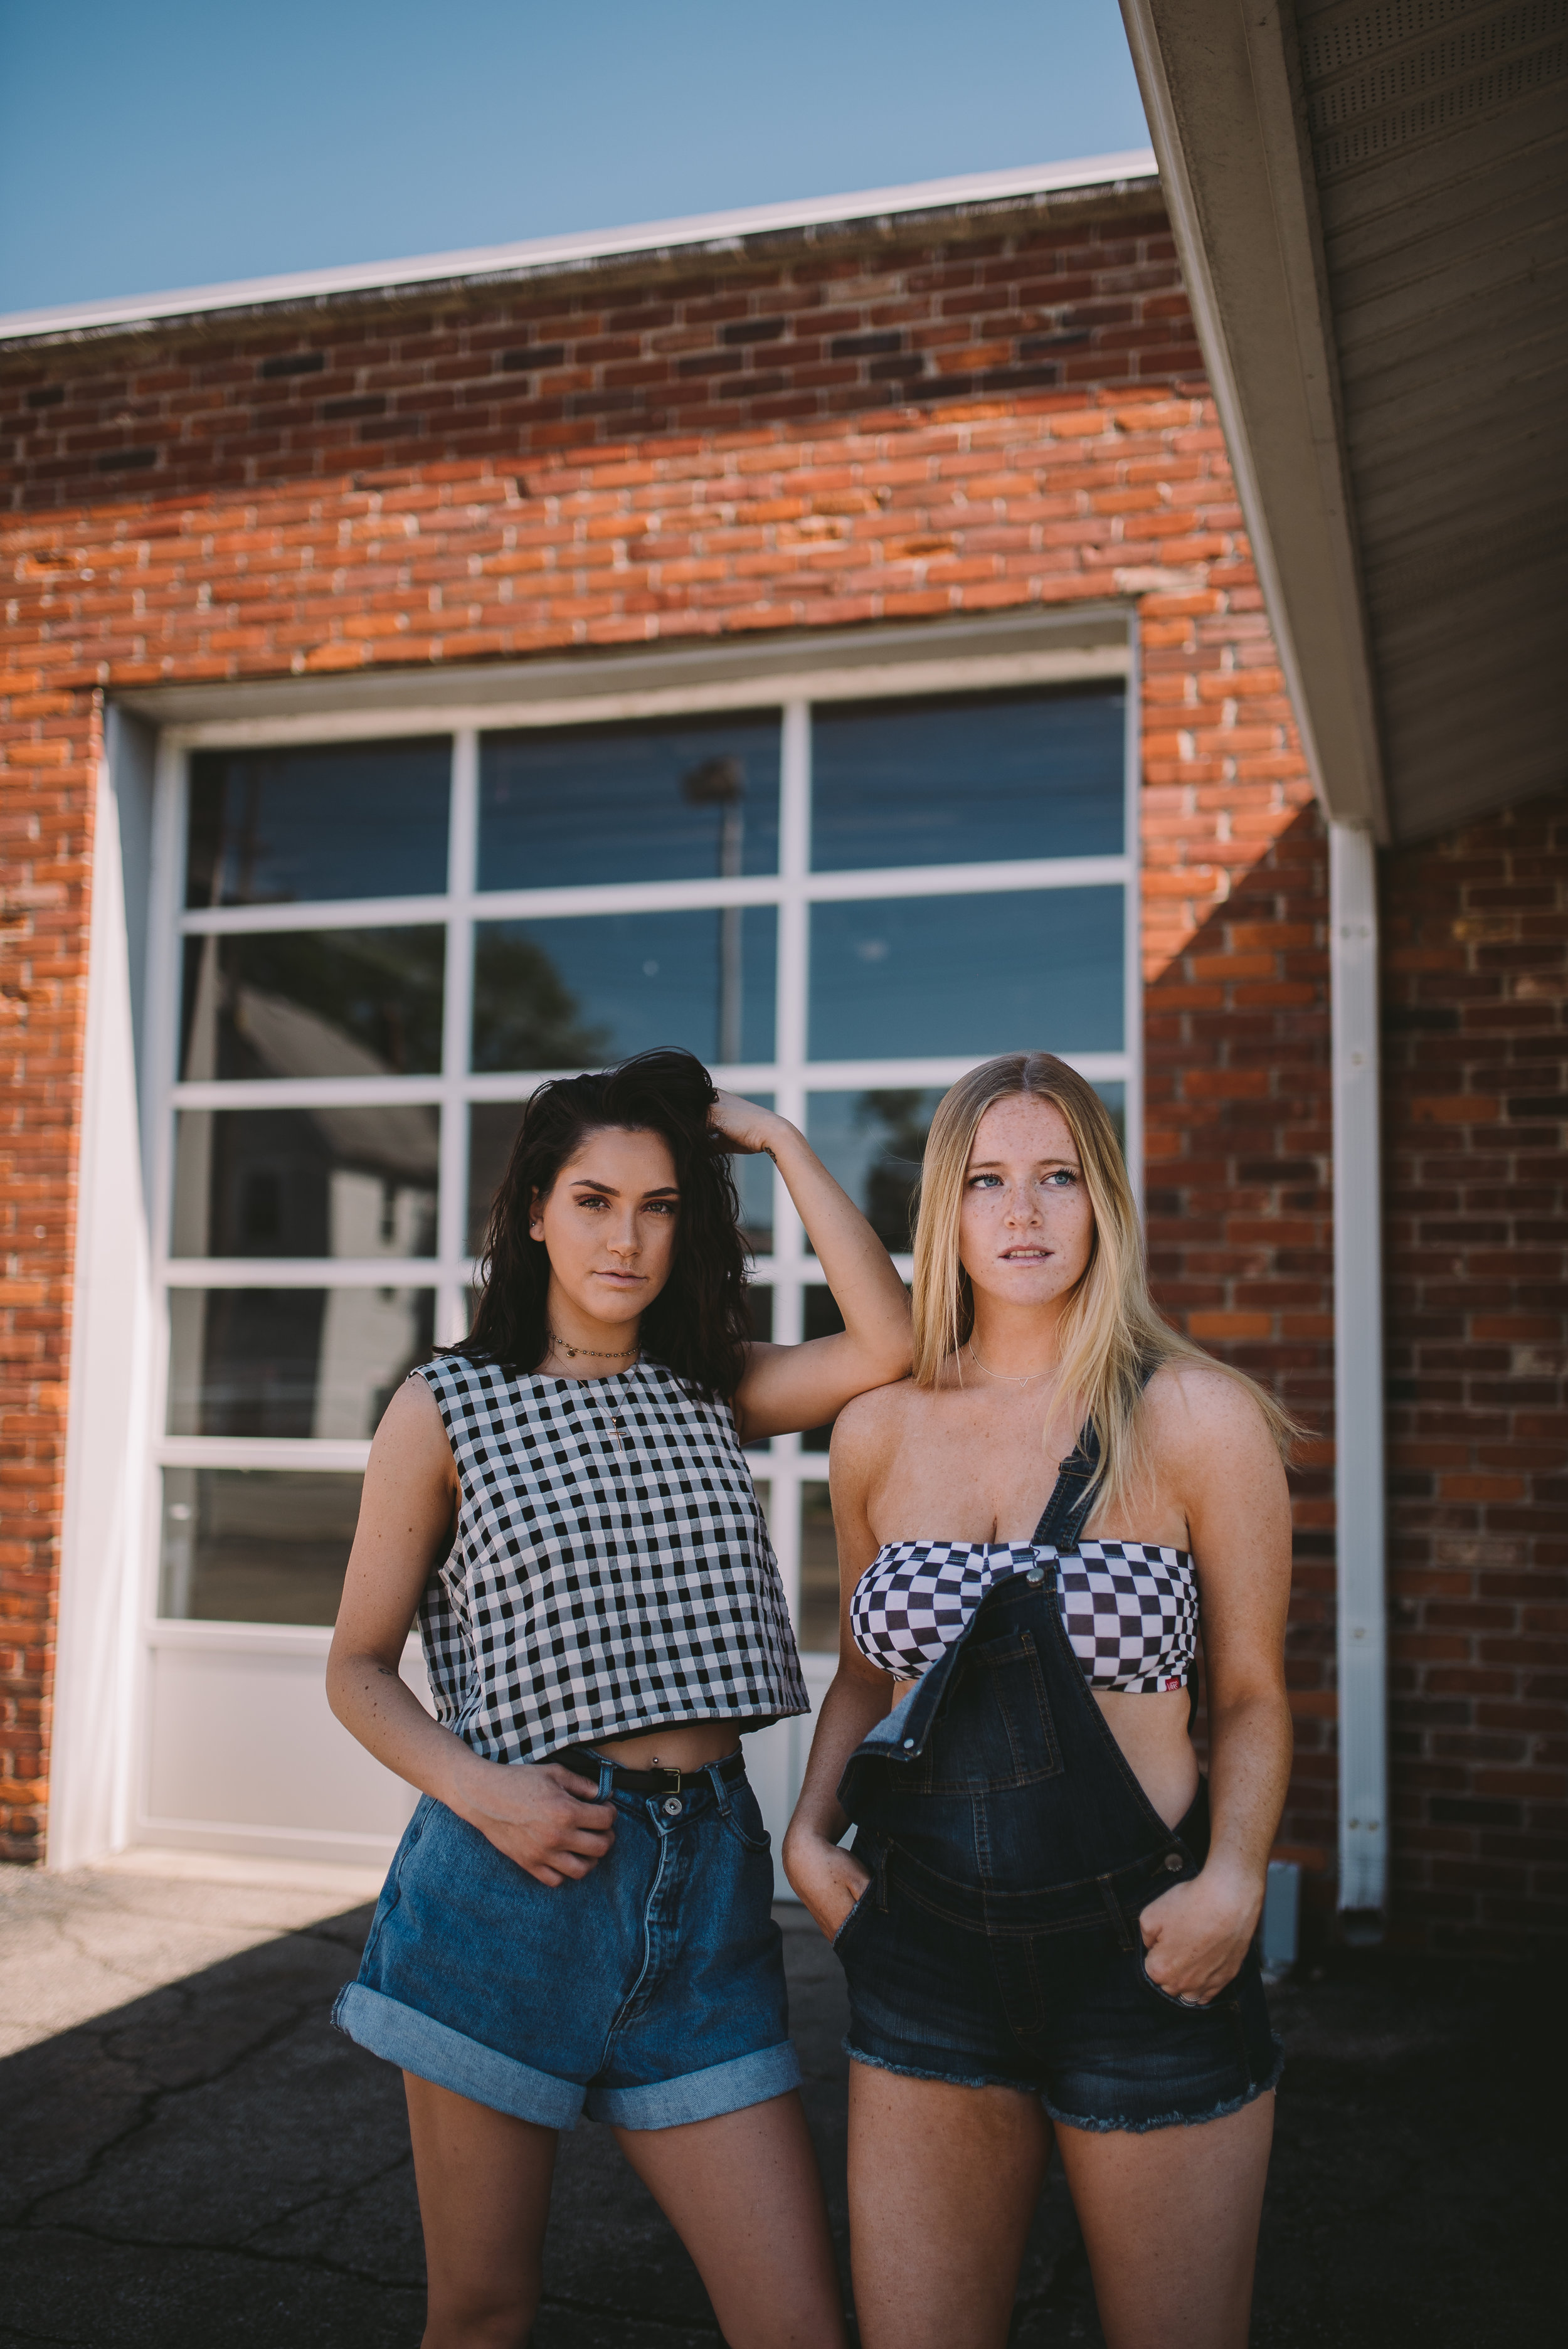 Indy500StyledSession_MuncieIN_May2018_Senior Photography In Phoenix Arizona_ArizonaSeniorPhotographer_SamanthaRosePhotography_FINAL_106.JPG